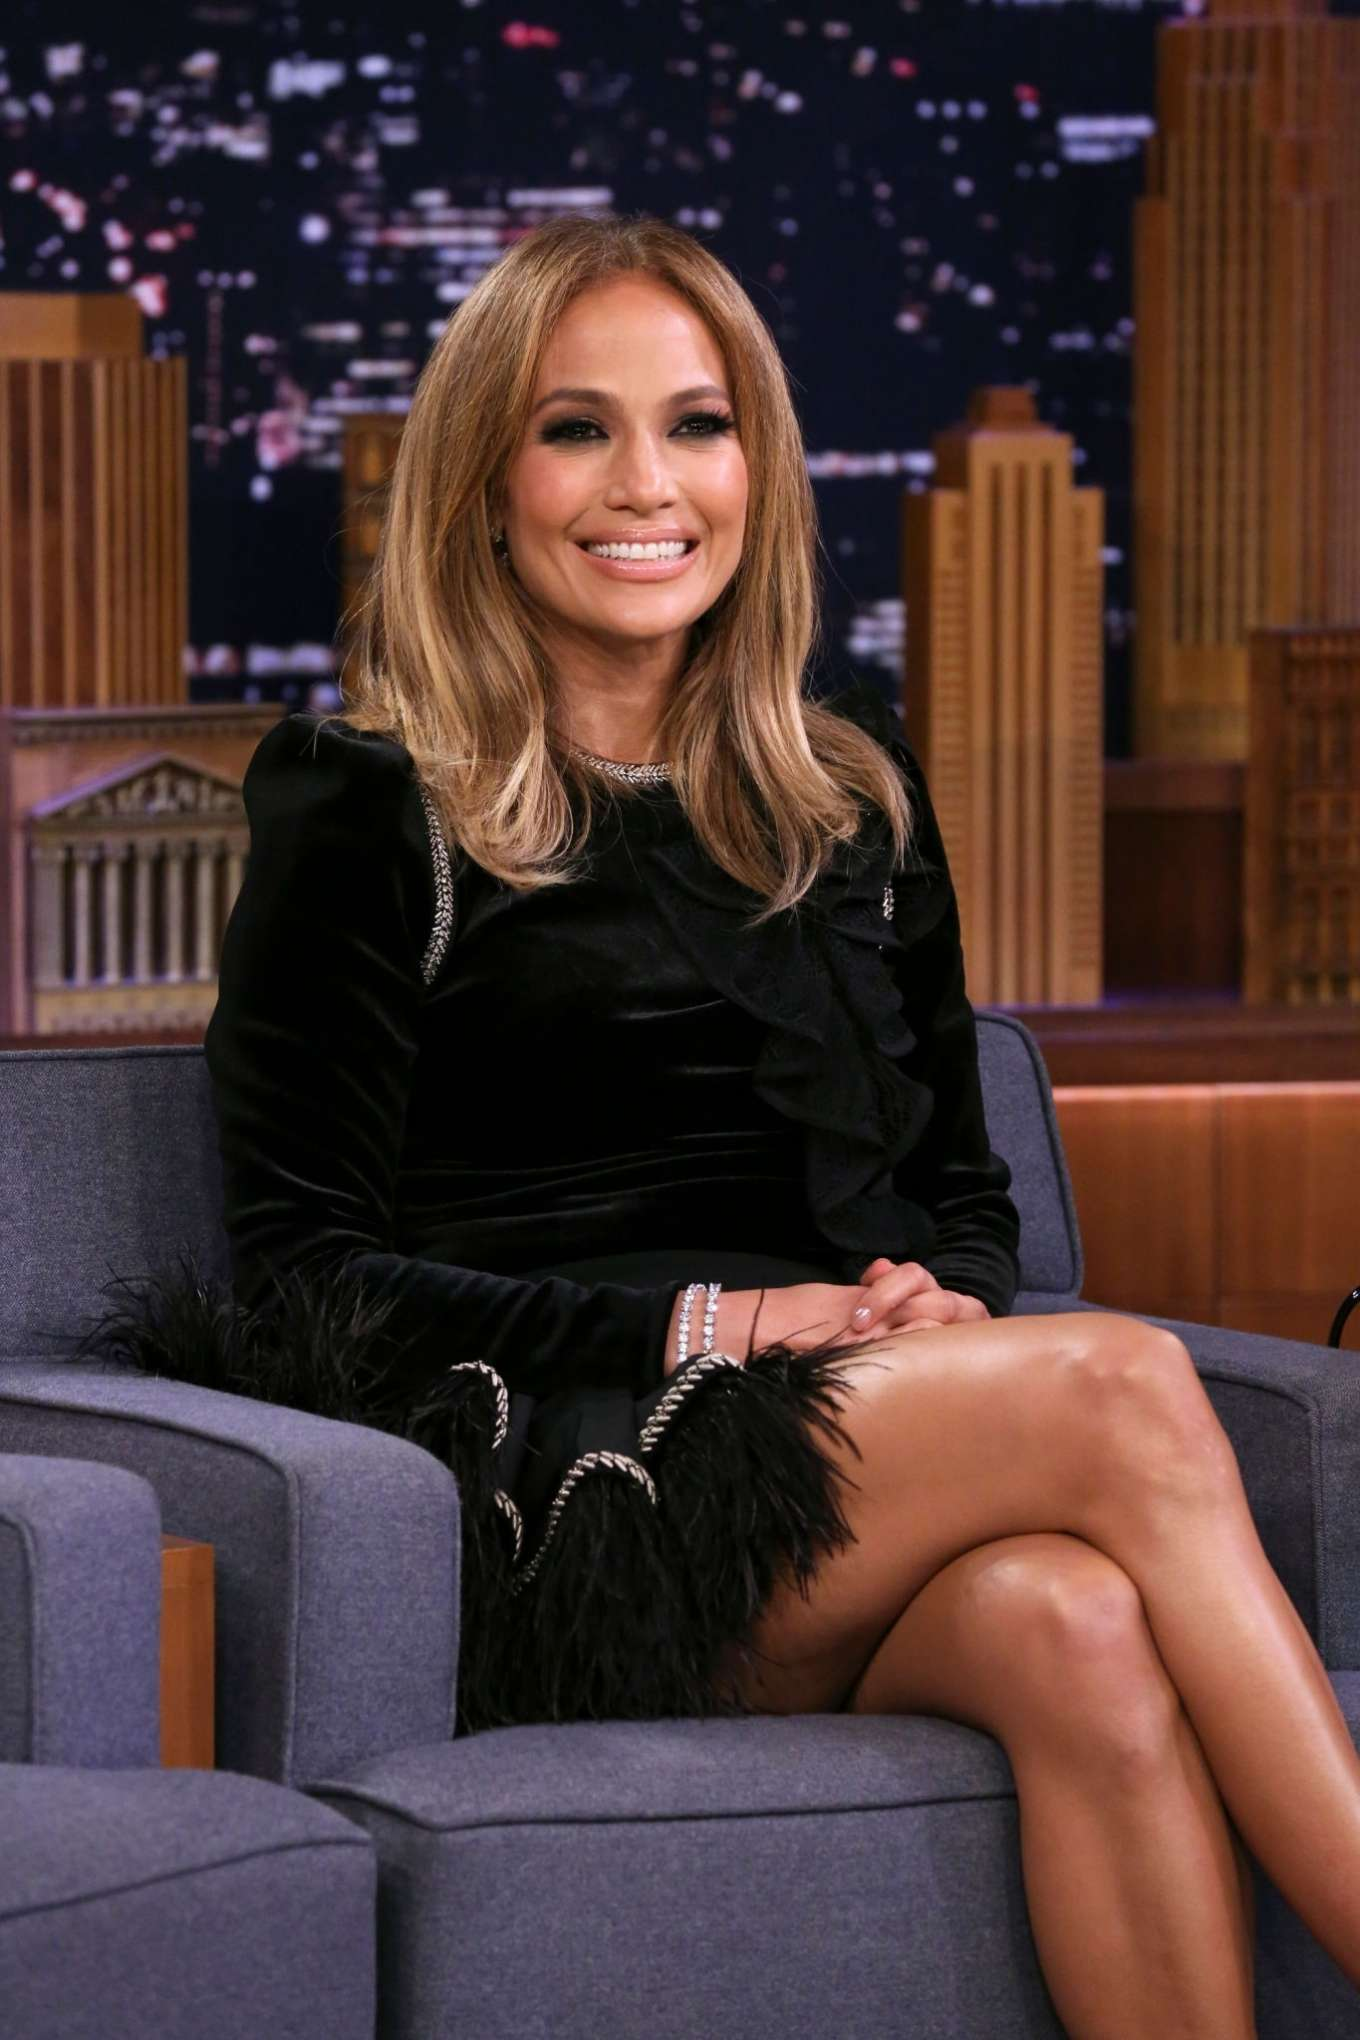 Jennifer Lopez - On 'The Late Show with Jimmy Fallon' in NYC